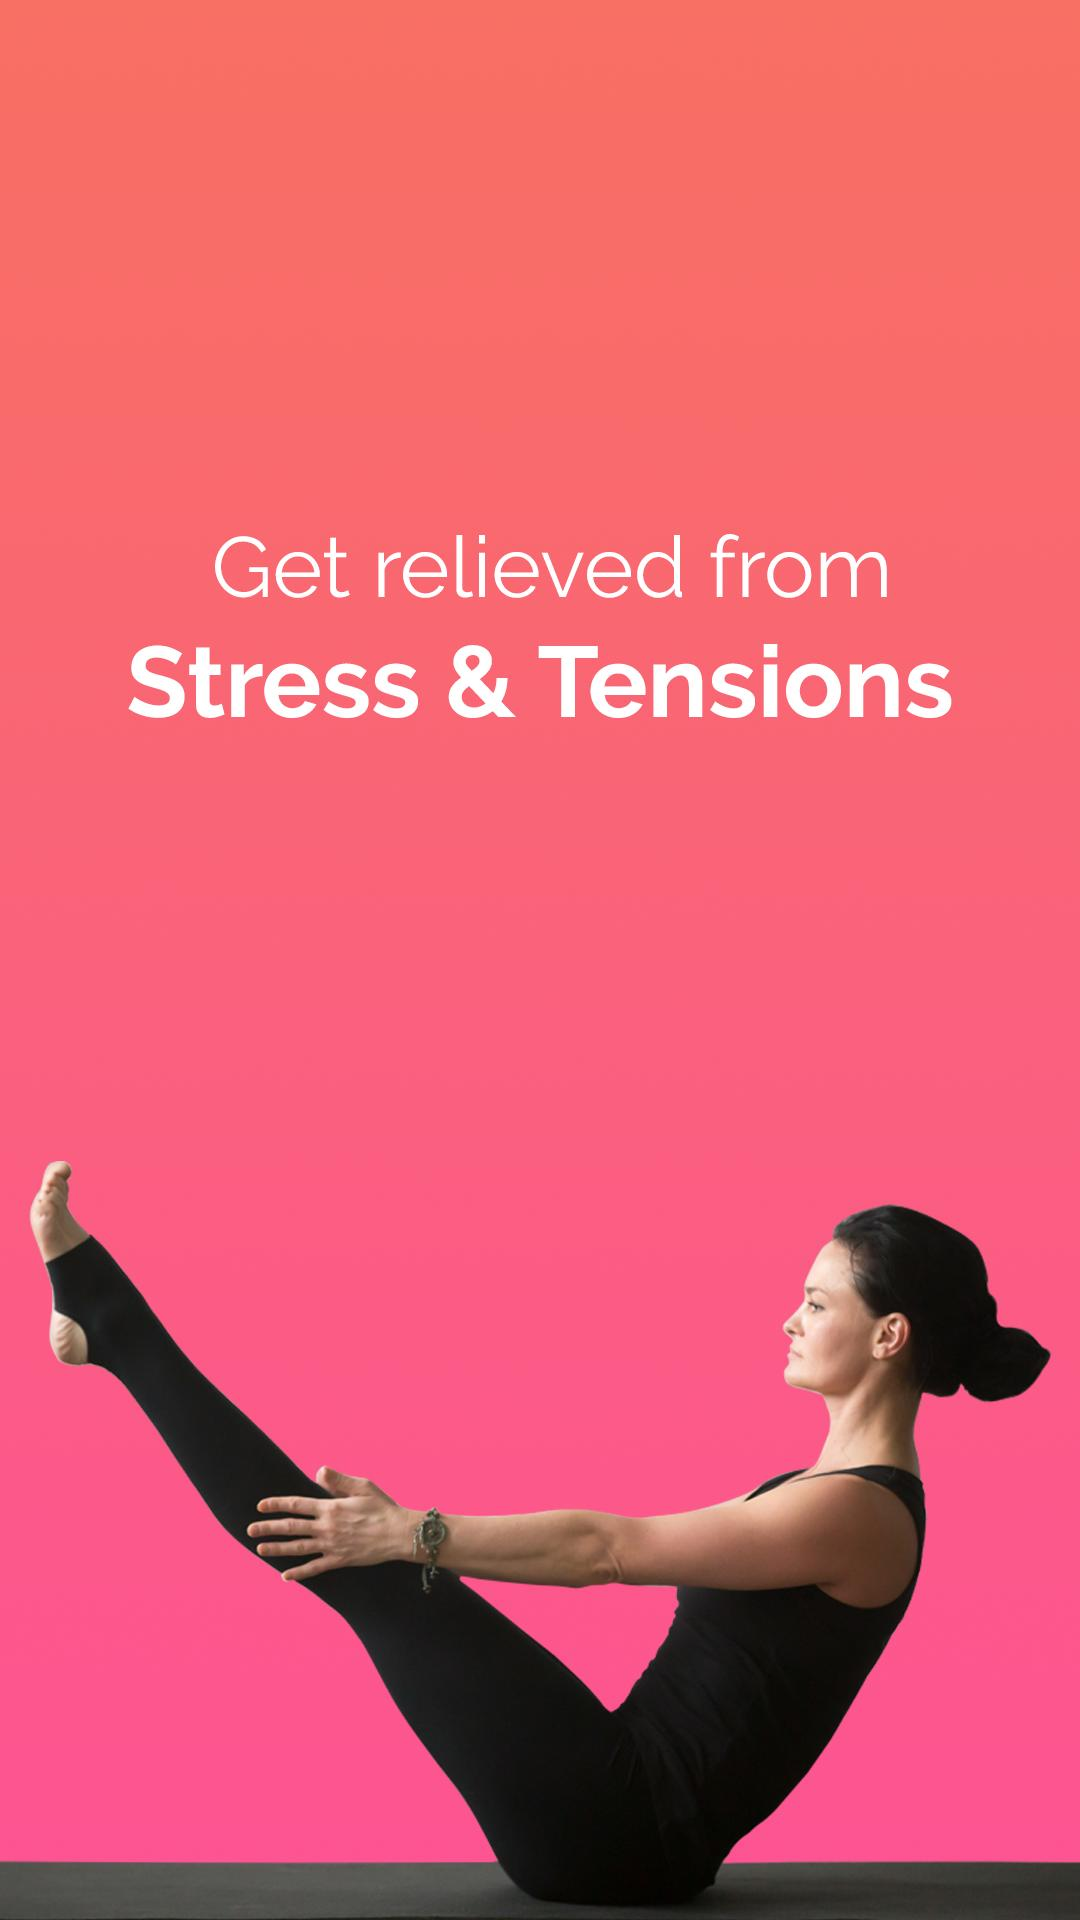 Daily Yoga Stretching Exercises For Beginners For Android Apk Download